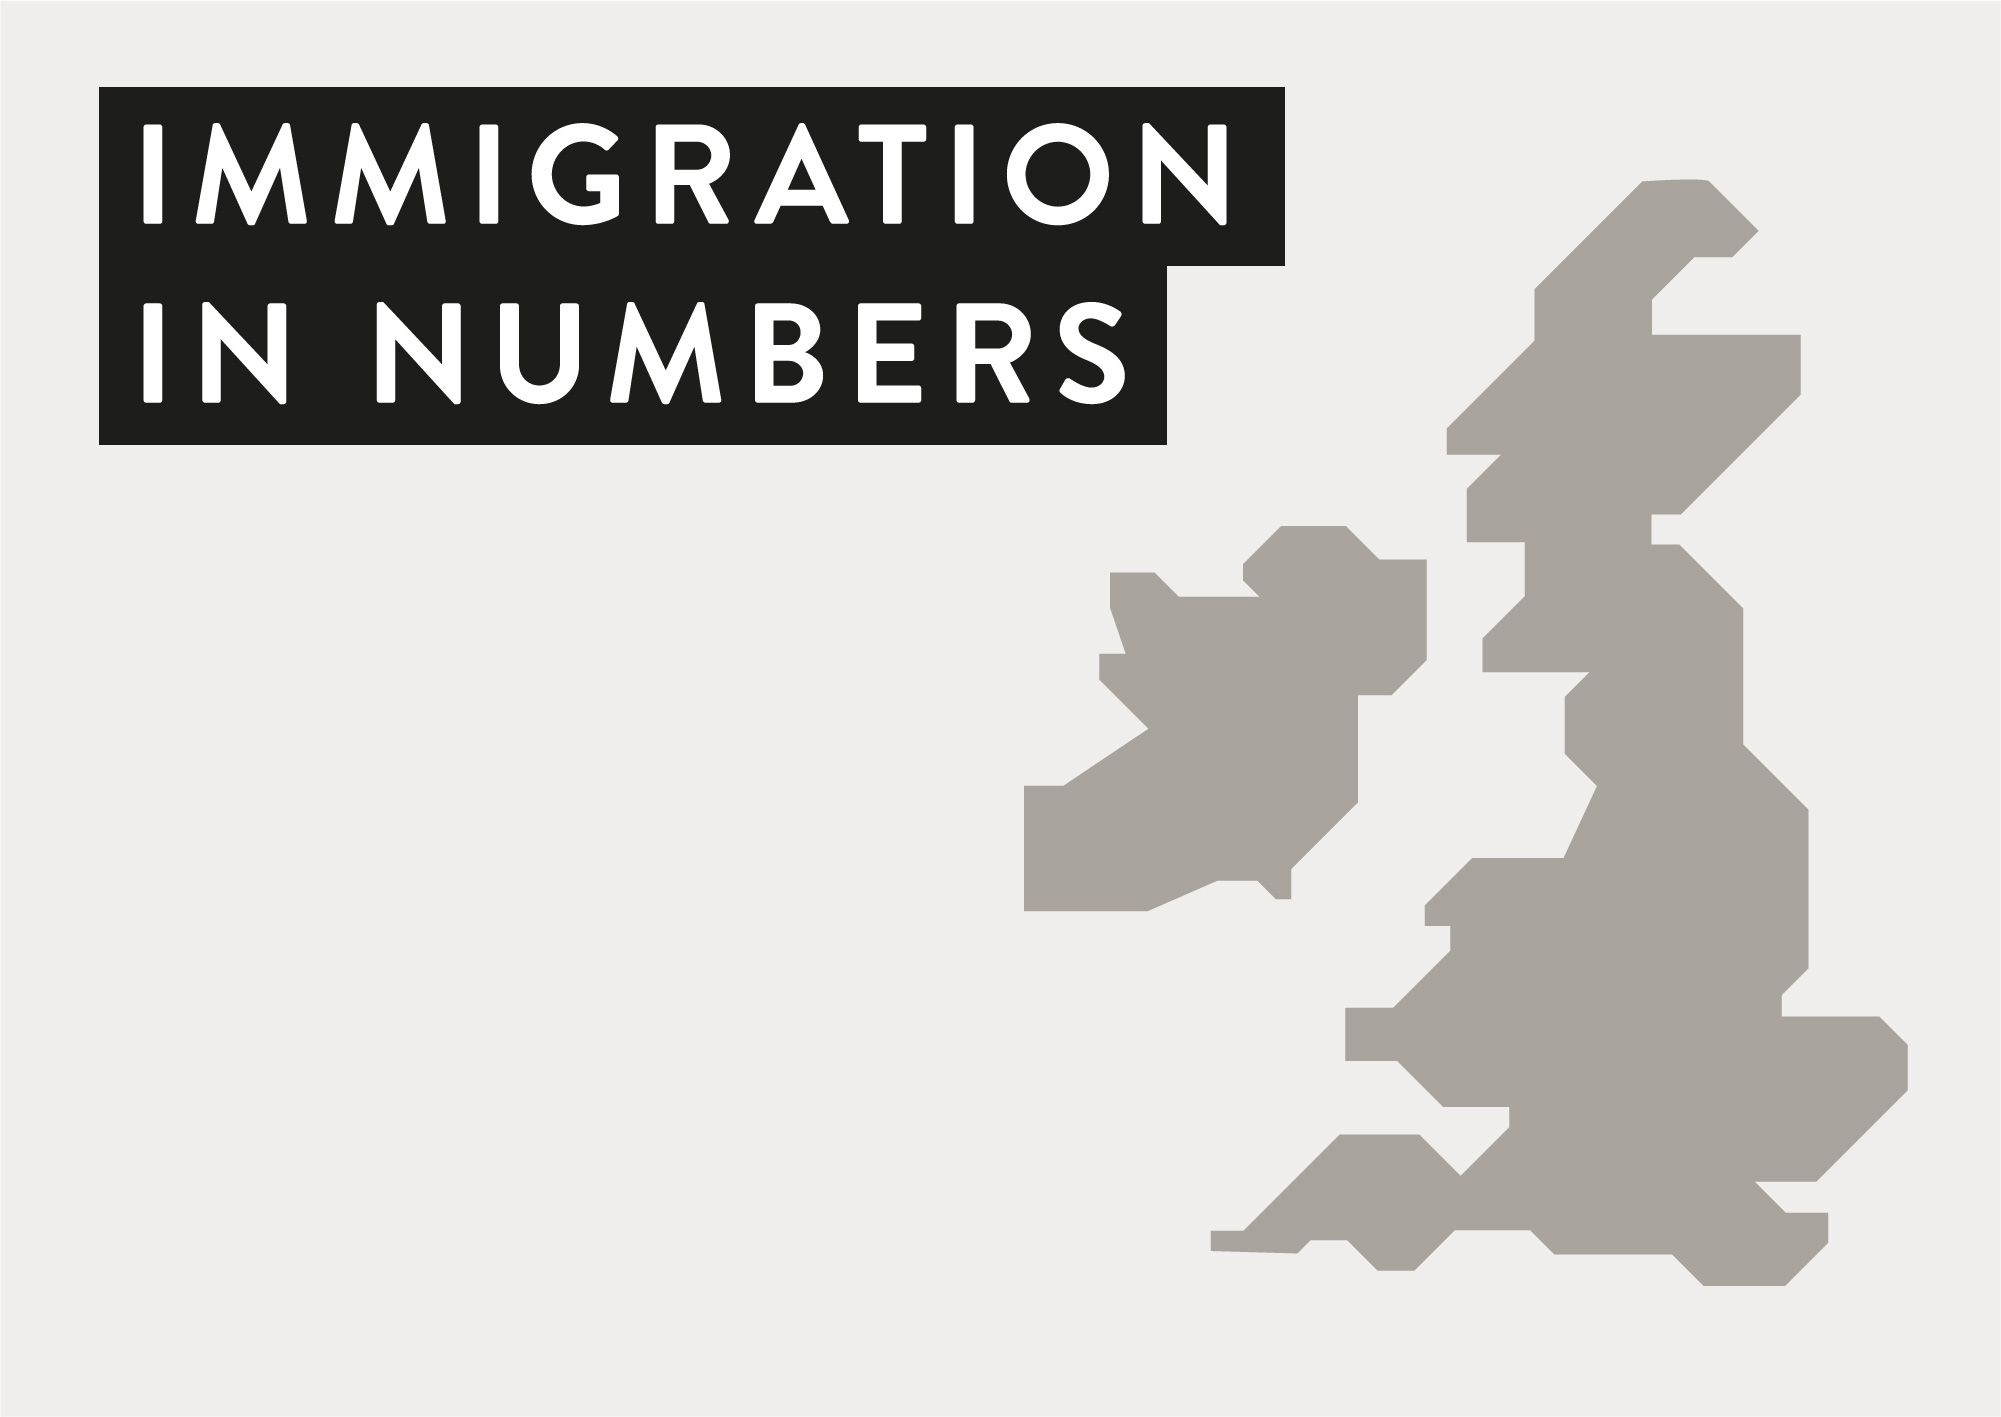 Immigration in Numbers: Latest statistics released